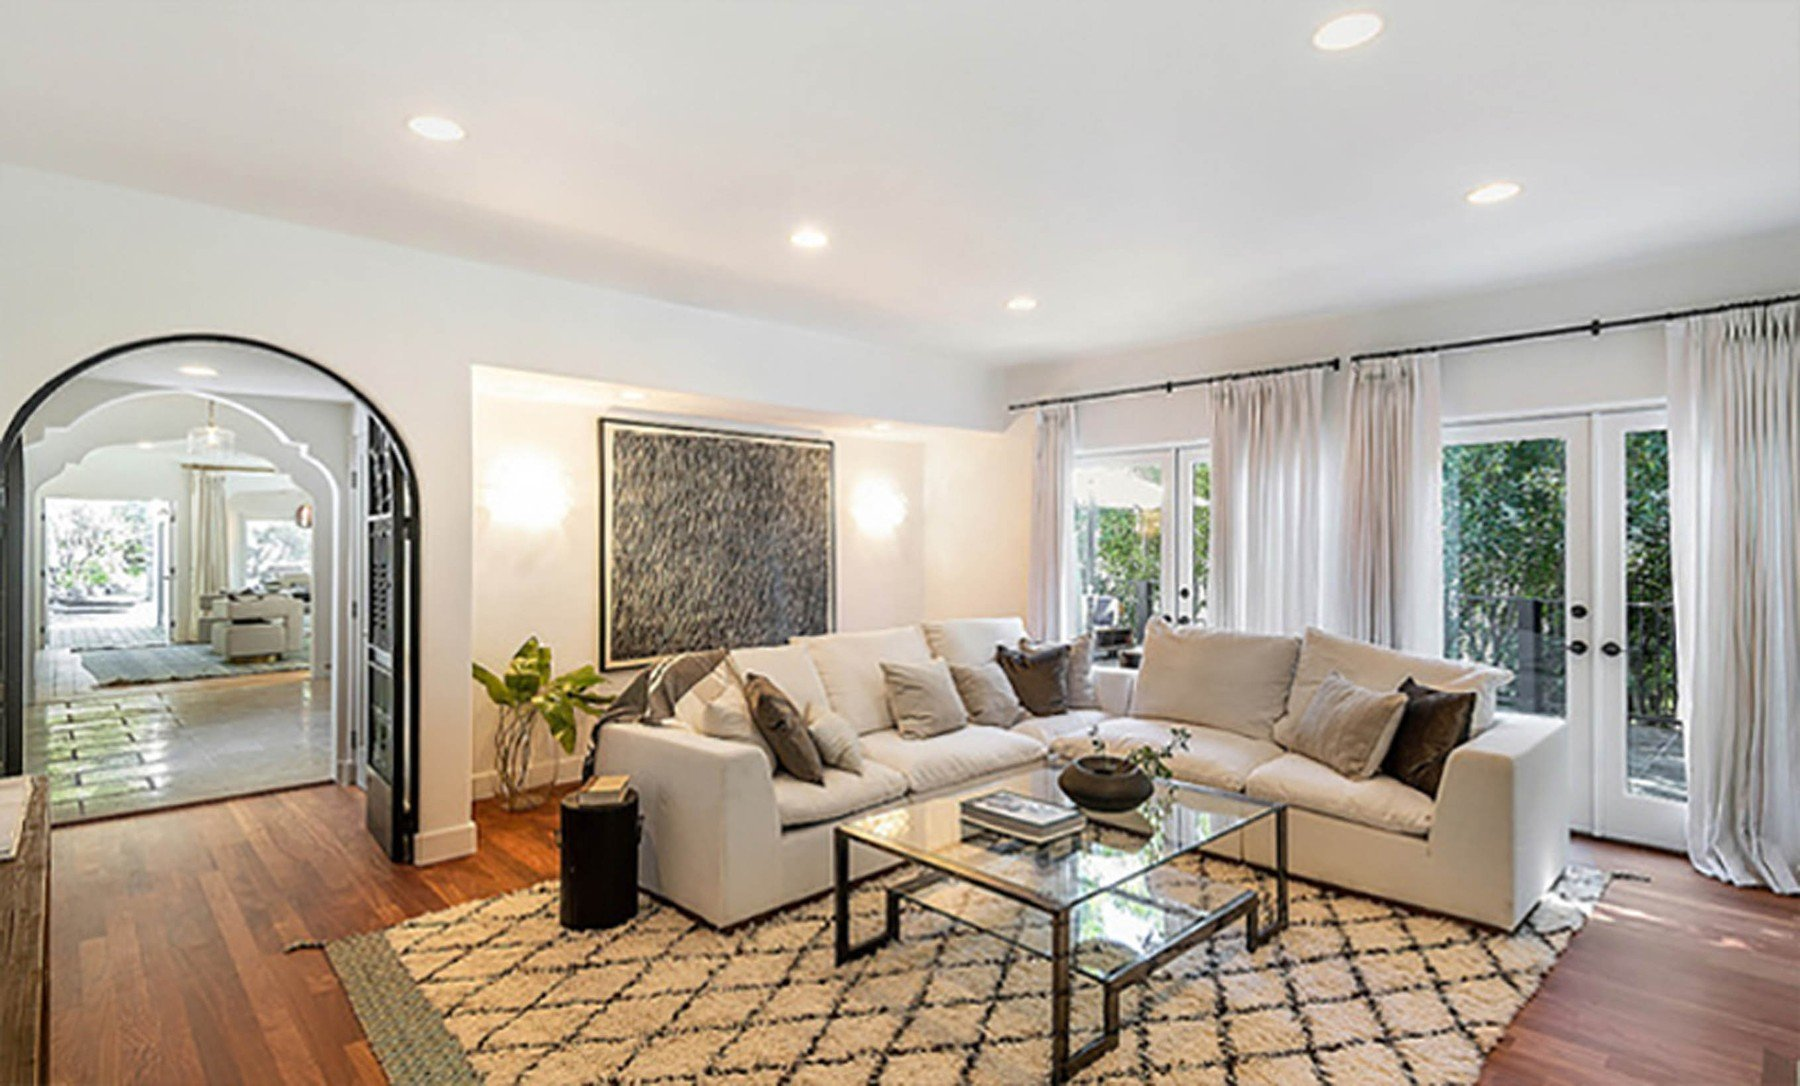 2-4-2019  Jessica Alba is looking to sell her home in Beverly Hills, Los Angeles for .195 million having recently purchased a larger house. With 5,300 square feet of living space, there are 5 bedrooms and 7 bathrooms. Built in the mid-1970s, the house sits on almost half of an acre of land behind large security gates.  Pictured: Jessica Alba's house, Image: 423690052, License: Rights-managed, Restrictions: , Model Release: no, Credit line: Profimedia, Planet